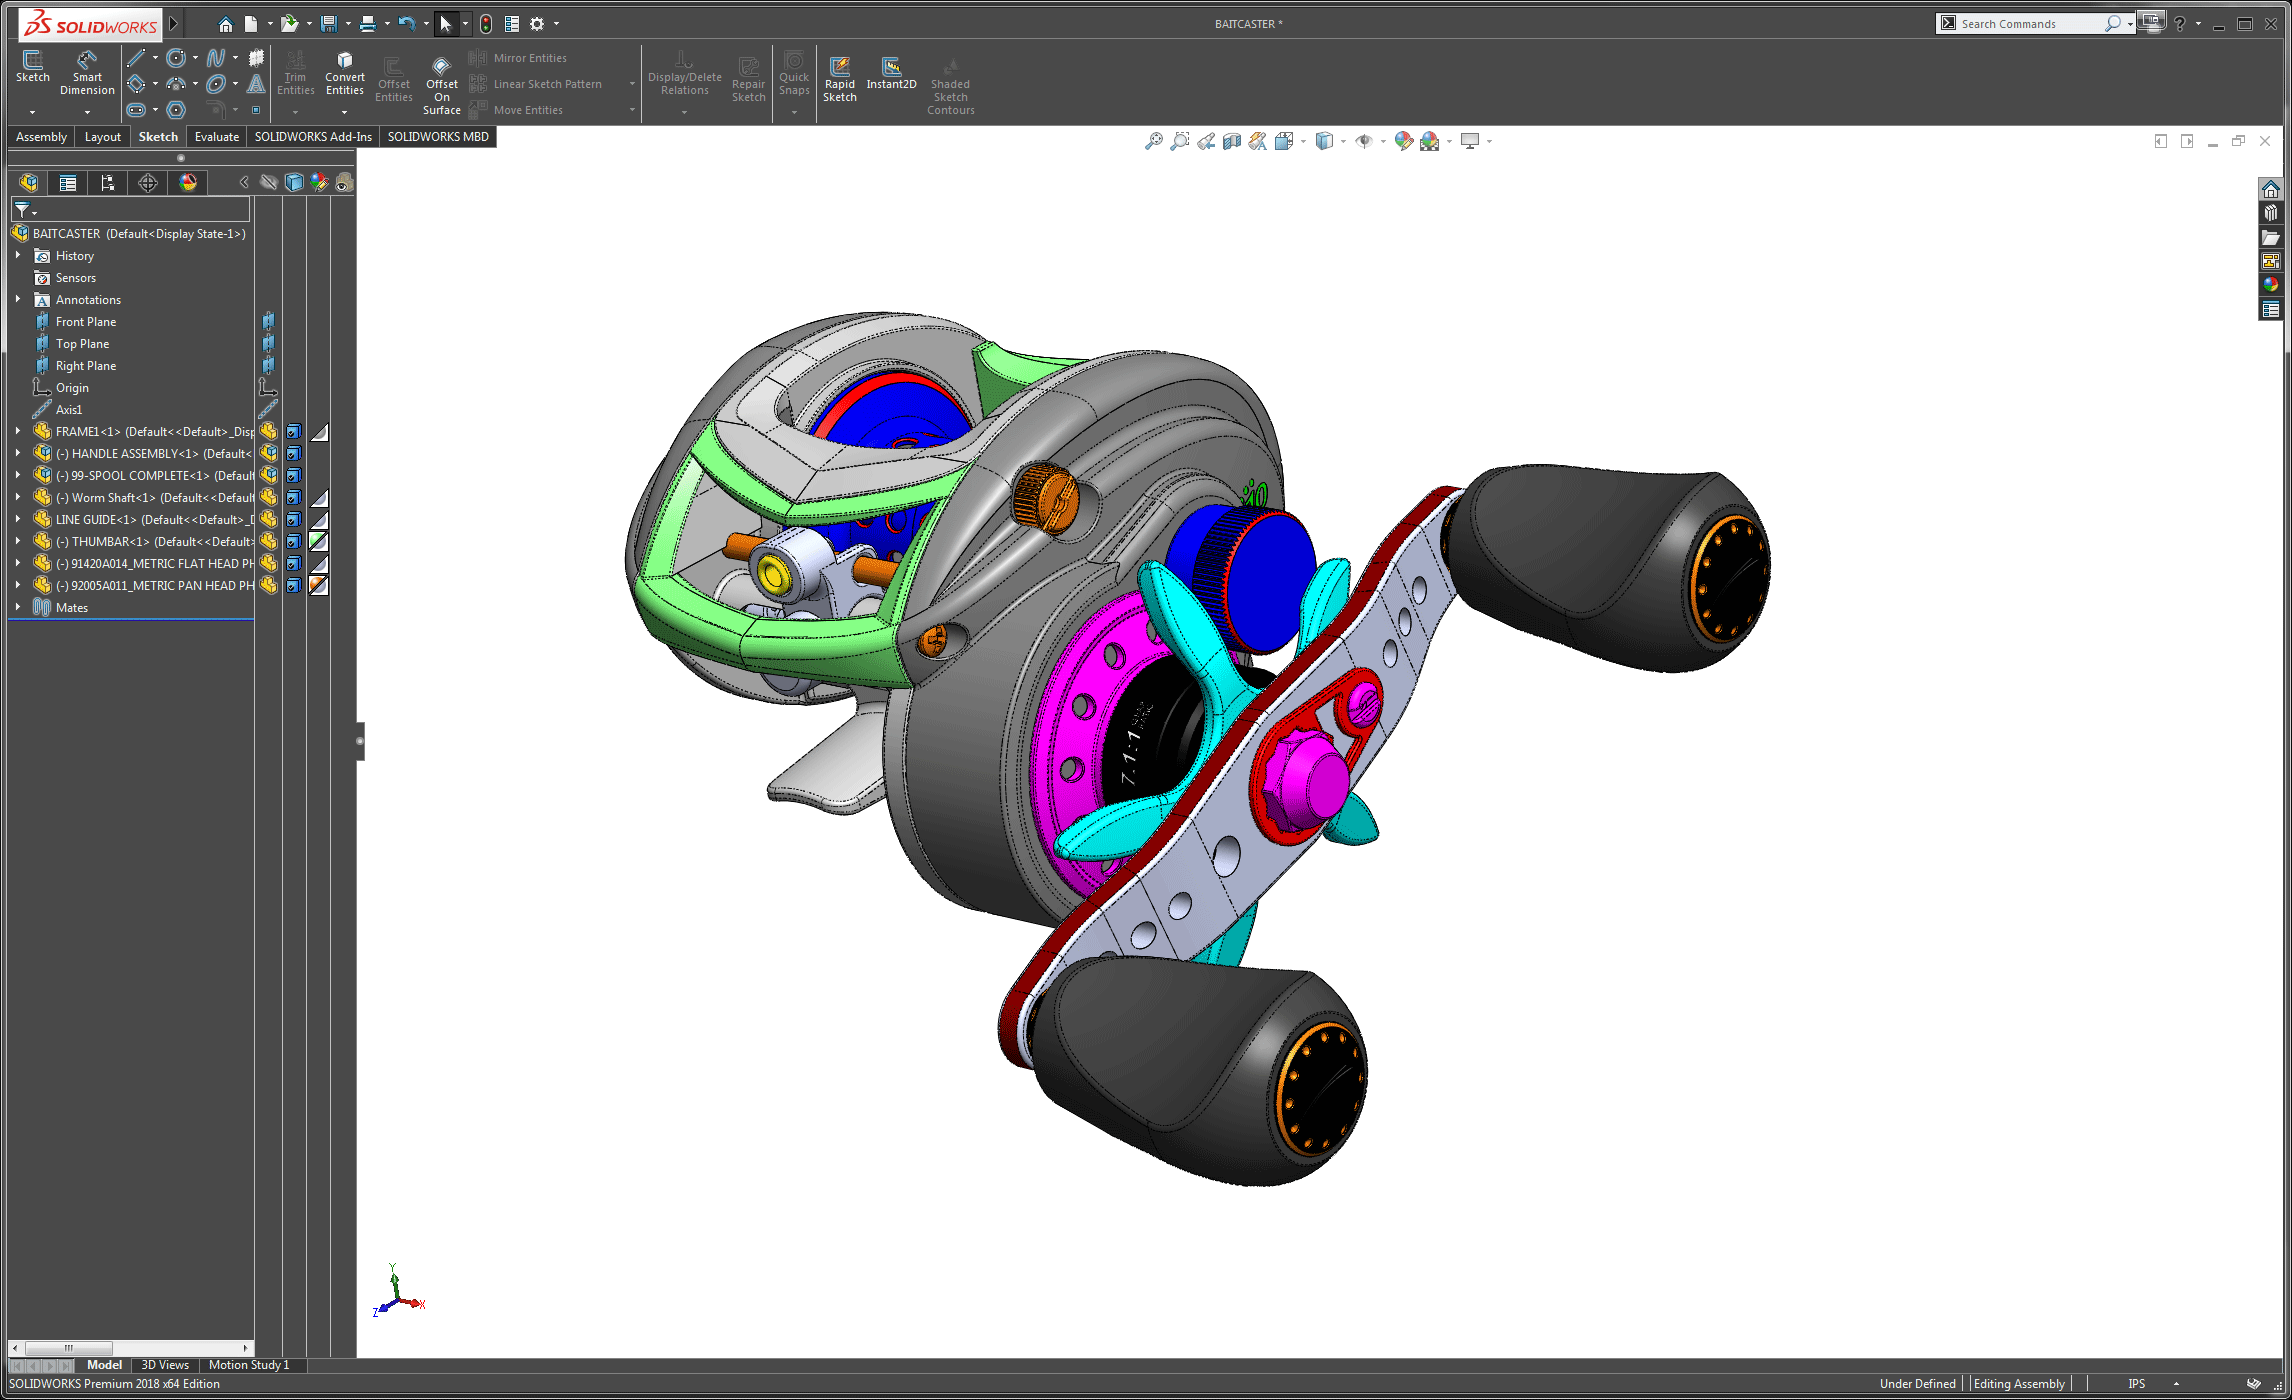 Ratha Designs - 3D Scanning and Reverse Engineering Rod and Reel